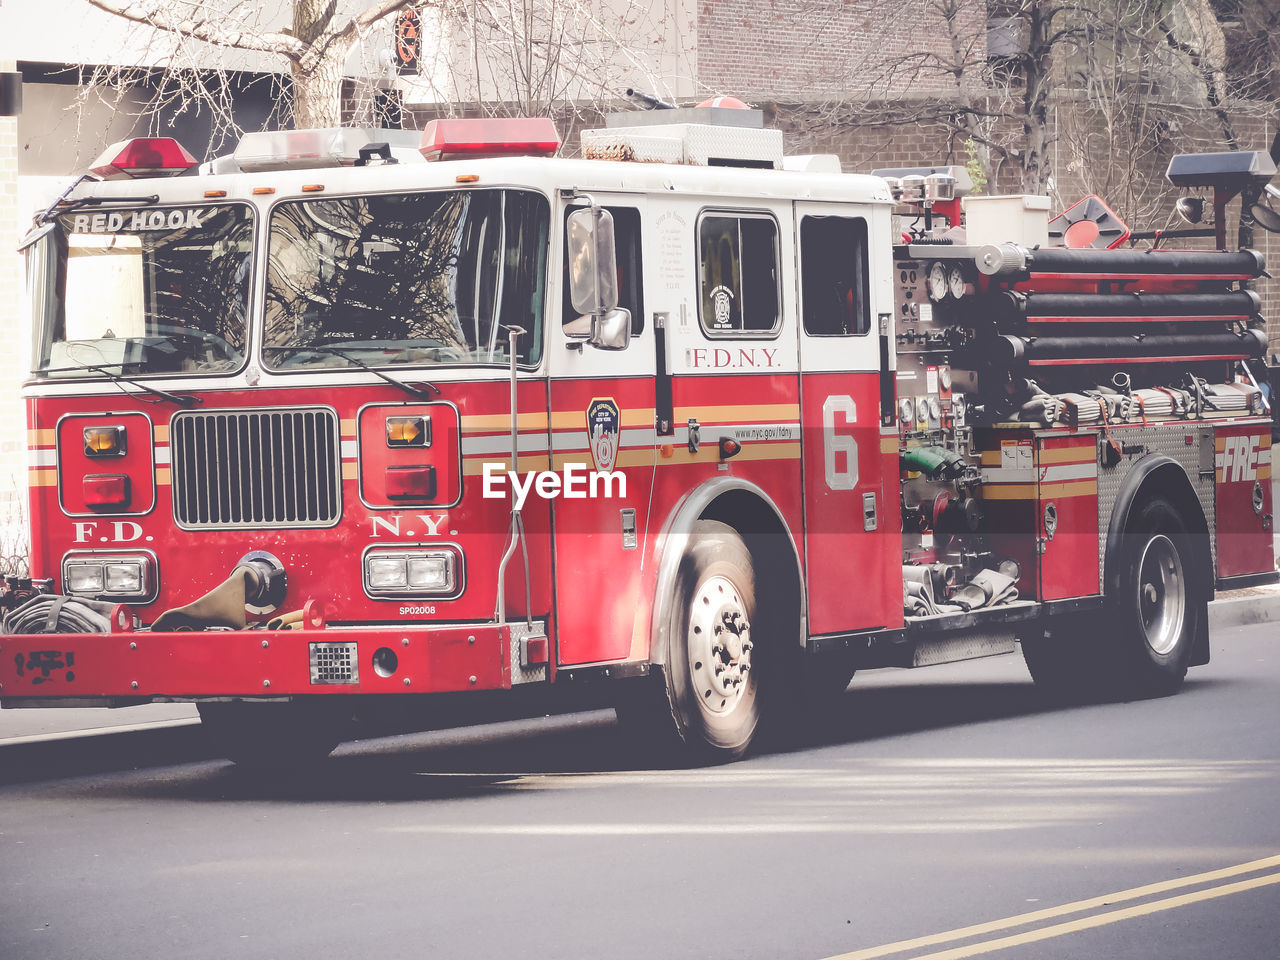 transportation, land vehicle, mode of transportation, truck, red, fire engine, city, accidents and disasters, emergency services occupation, street, motor vehicle, architecture, rescue, occupation, road, protection, firefighter, day, commercial land vehicle, car, rescue worker, wheel